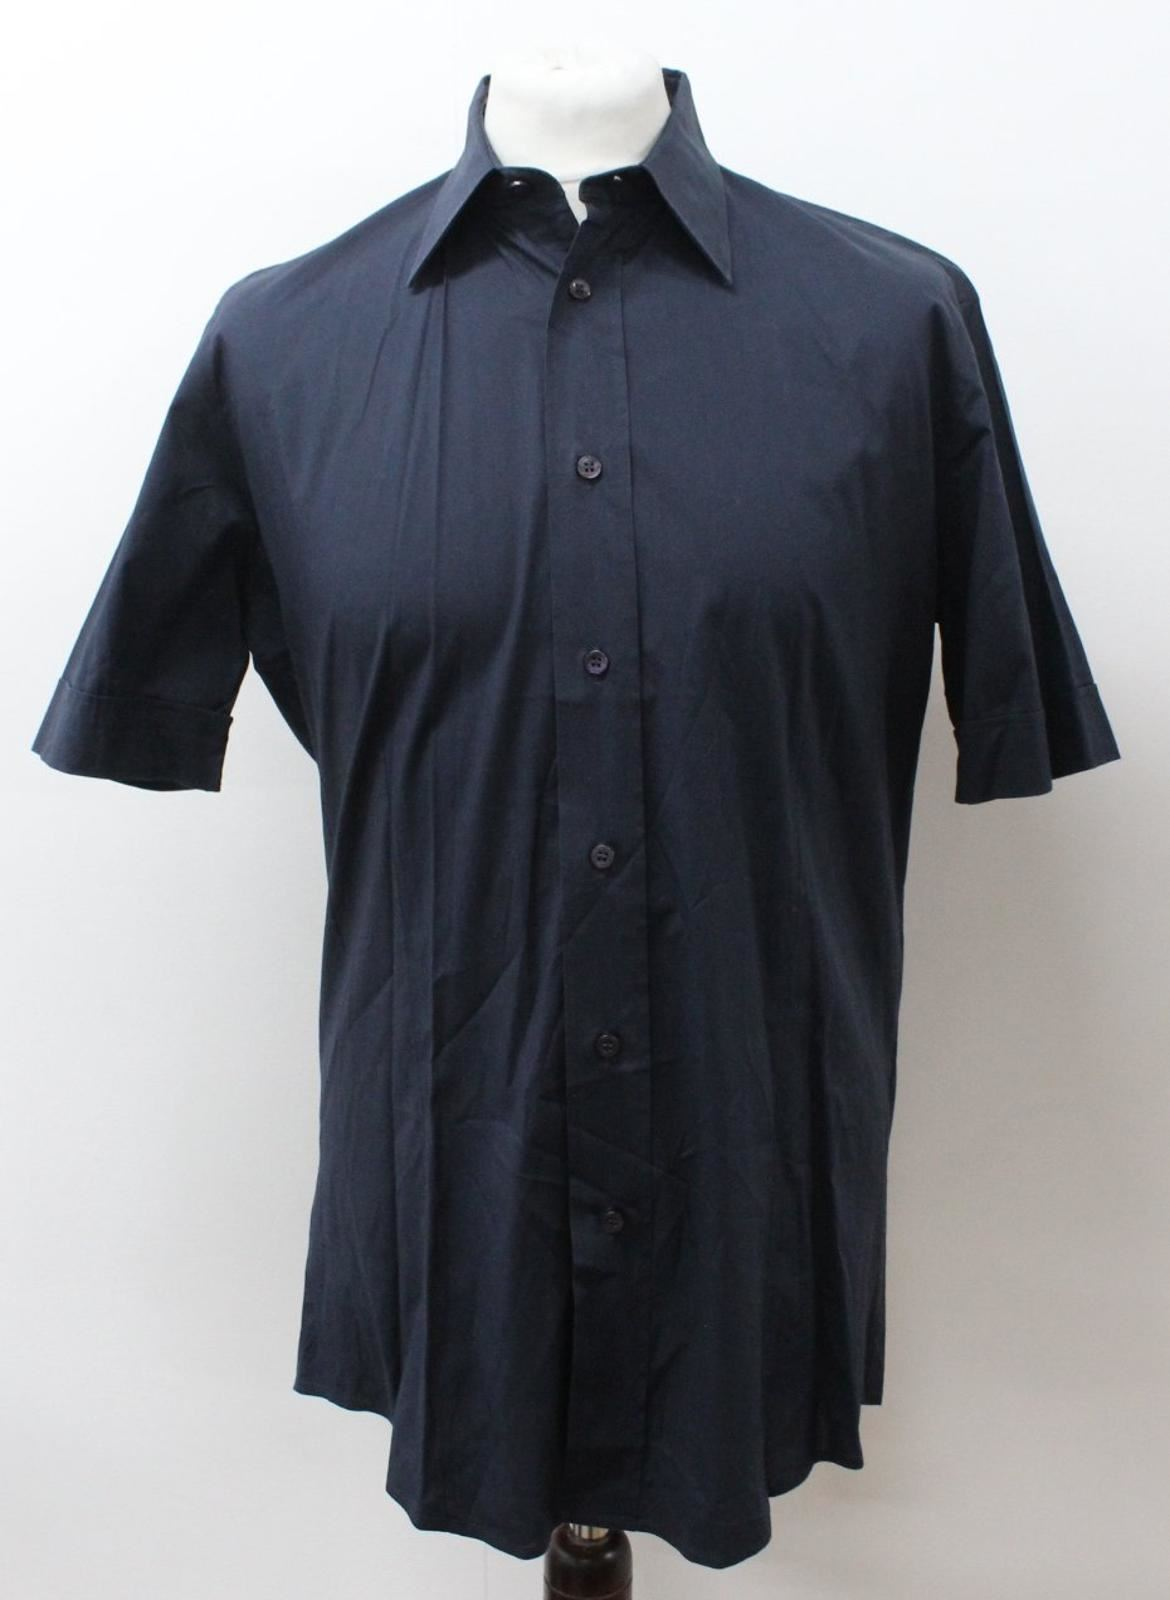 581bc26b BOSS Men's bluee Cotton Blend Short Sleeve Collared Casual Size L Shirt HUGO  oosgvg1821-Casual Shirts & Tops